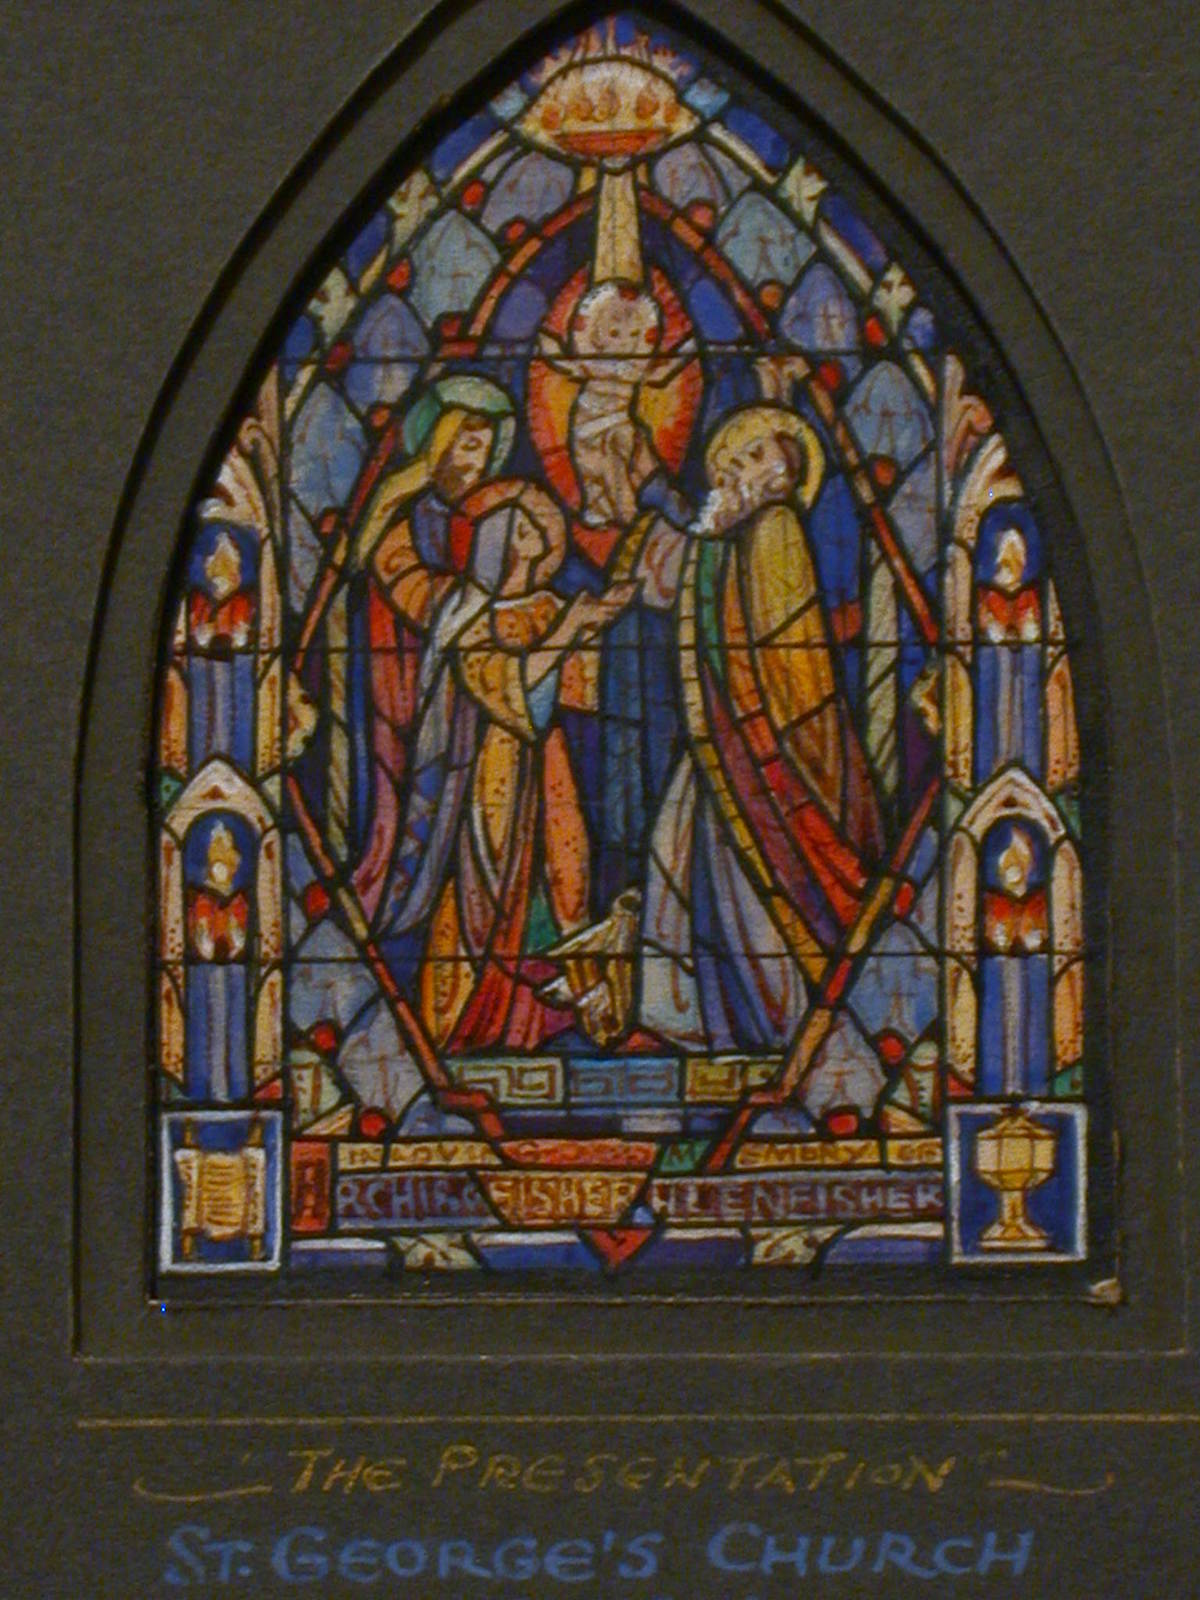 [Design drawing for stained glass window memorial window in loving memory of A[?] Fisher [H?] Fisher showing The Presentation for St. George's Episcopal Church in Macomb, Illinois]